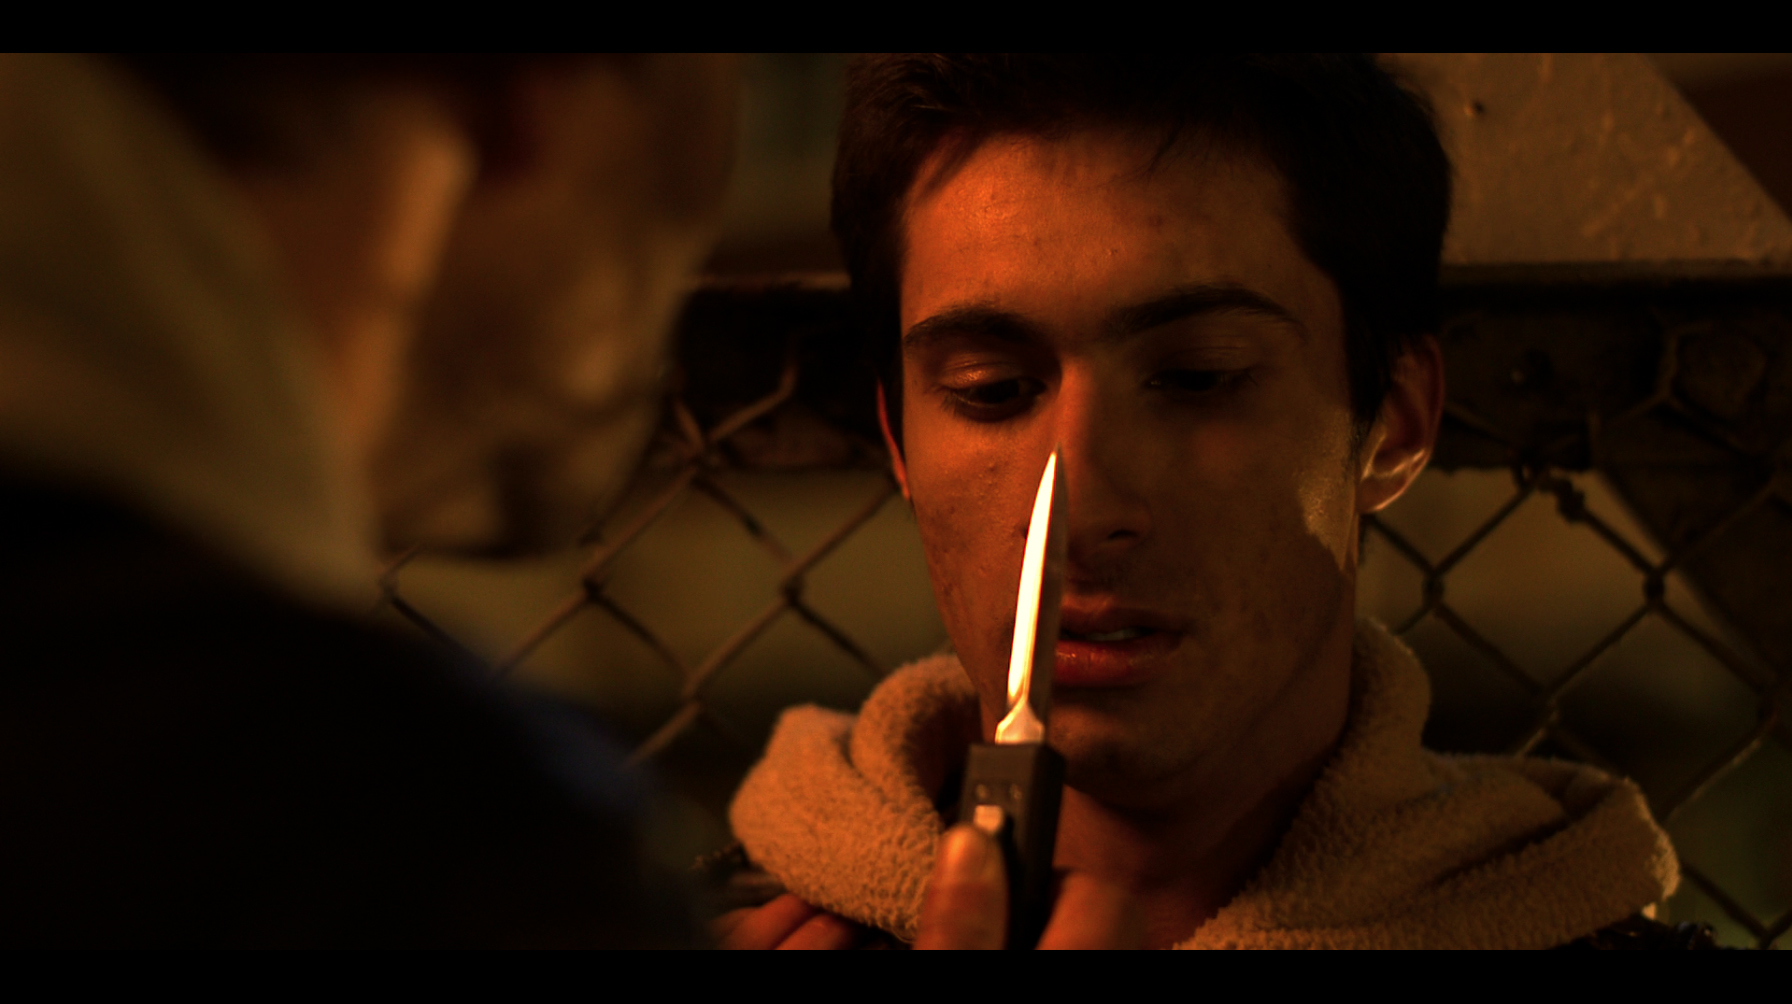 Knife in Jack's (Zuher Khan) face. Still from the film.